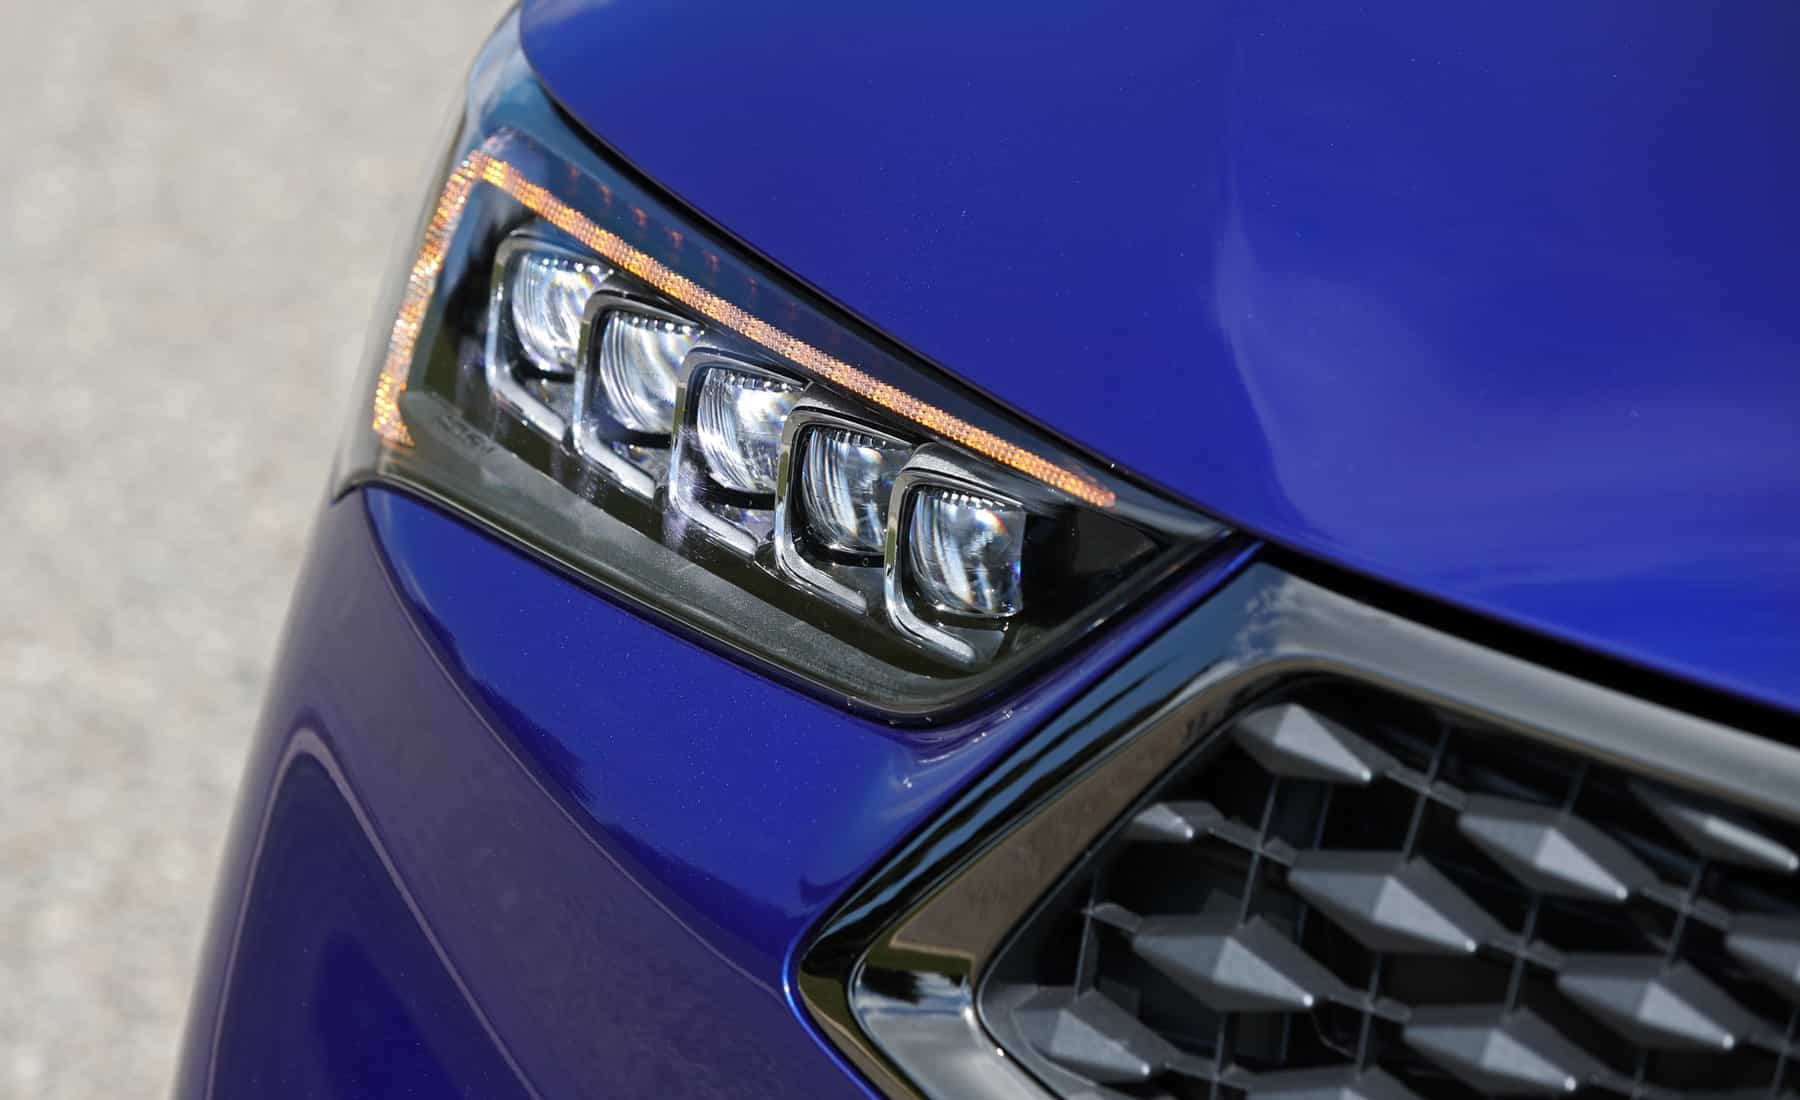 2018 Acura TLX Exterior View Headlight (Photo 10 of 46)